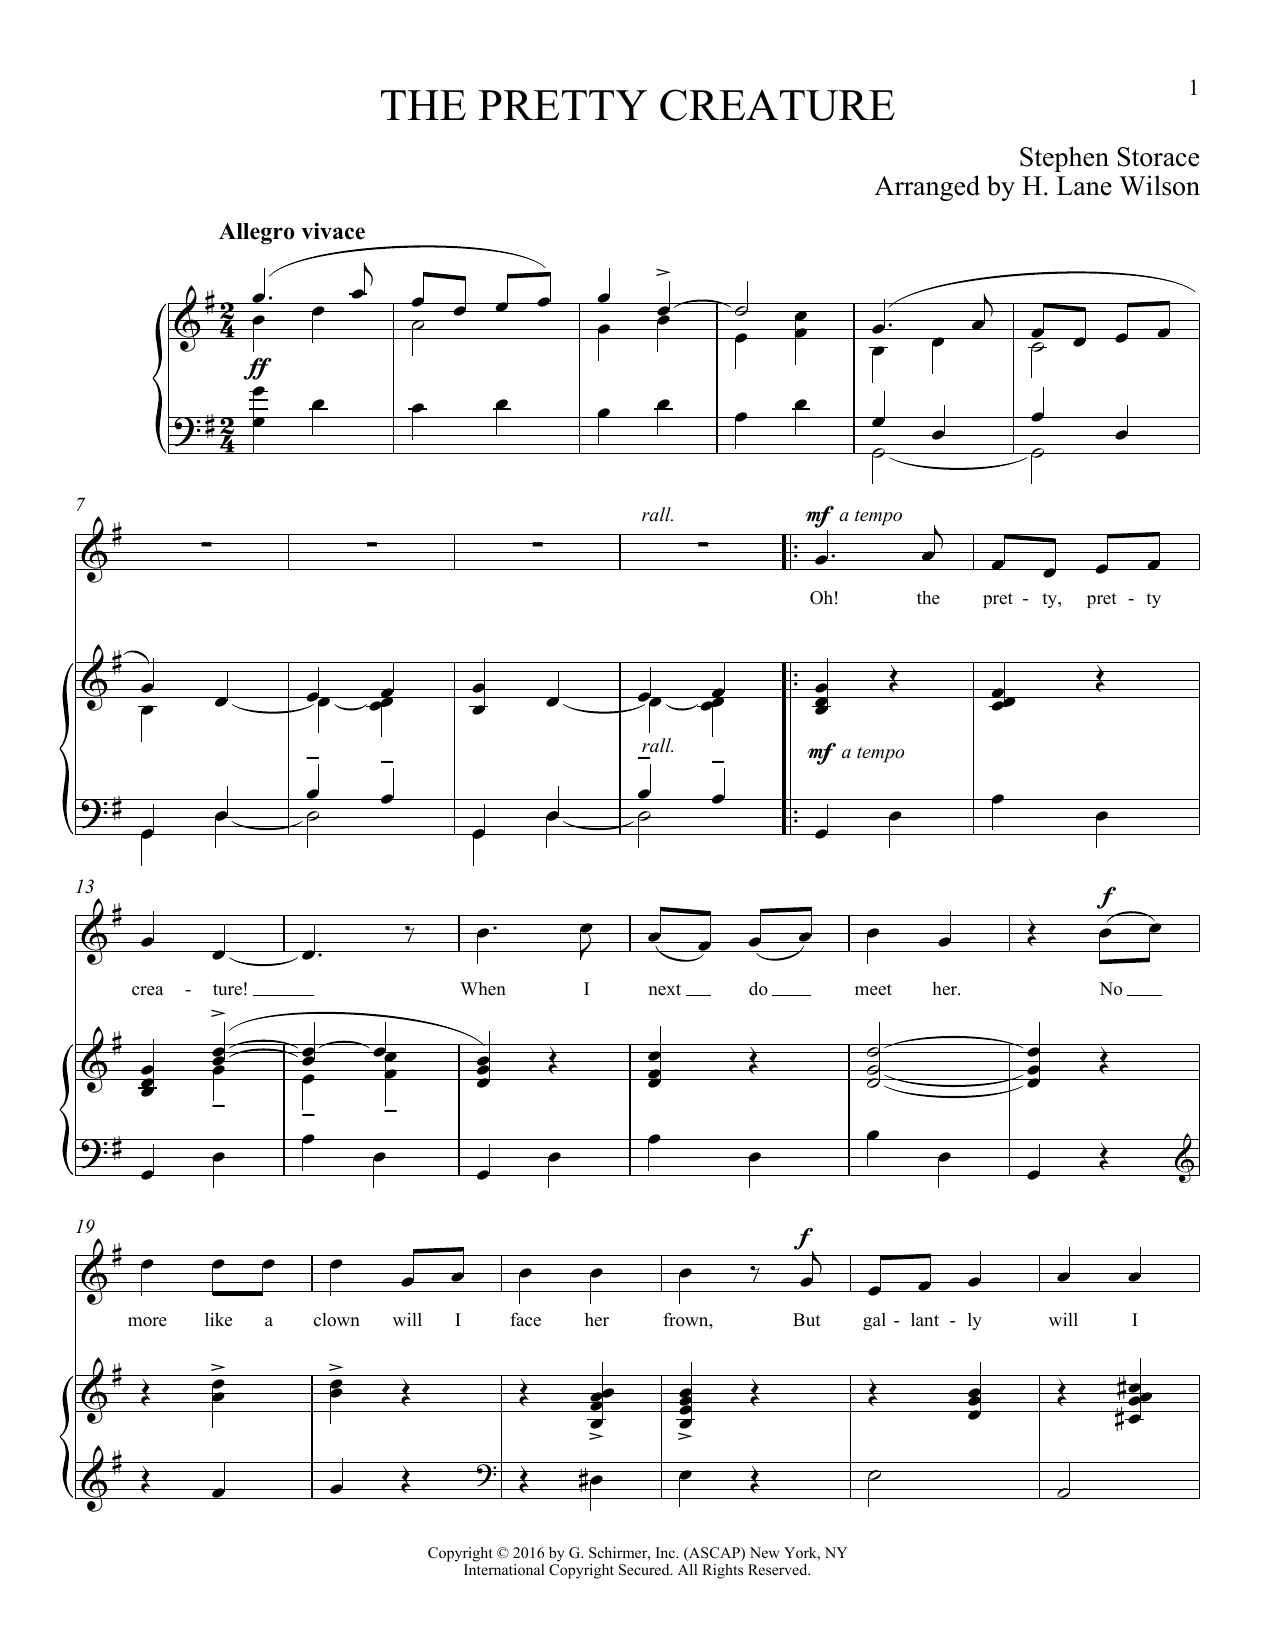 Stephen Storace The Pretty Creature sheet music notes and chords. Download Printable PDF.